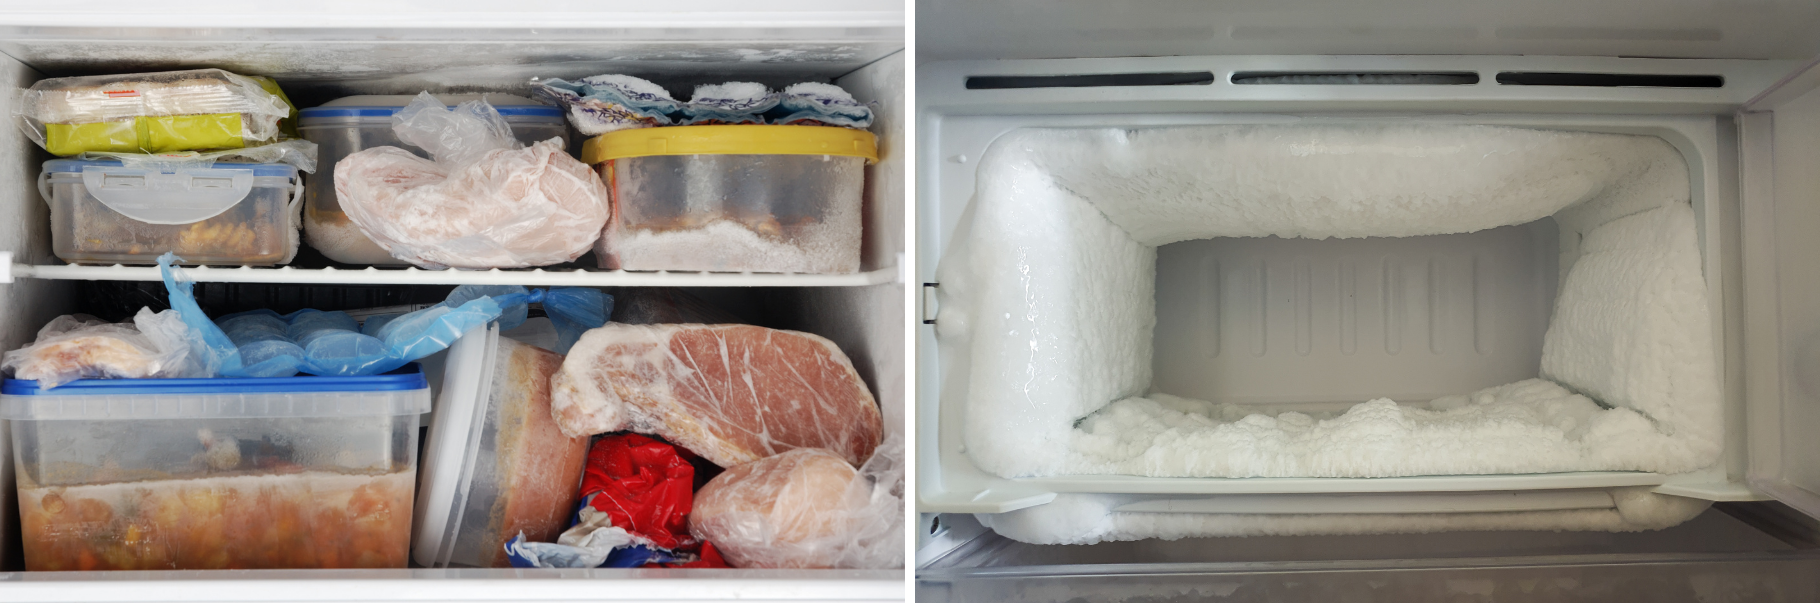 How to have a good use of your fridge and freezer